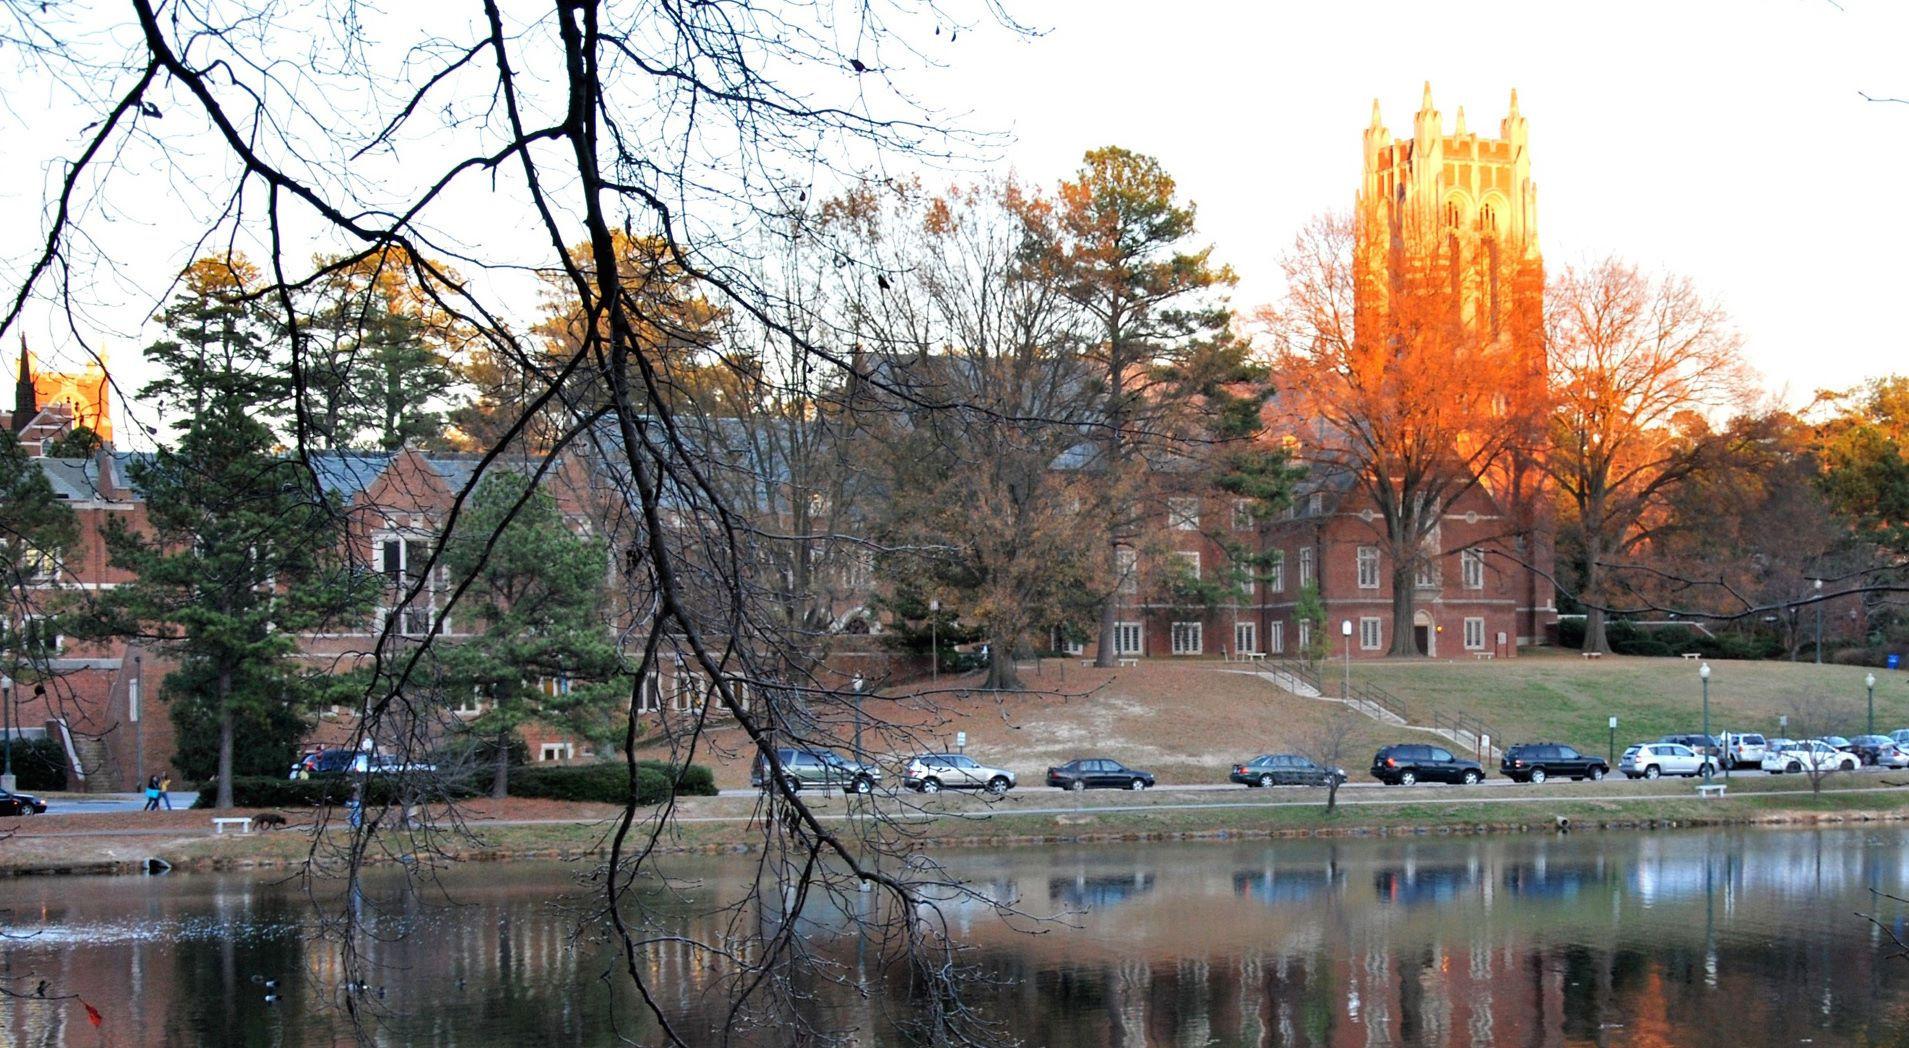 sunrise pictures at university of richmond - HD 1909×1048